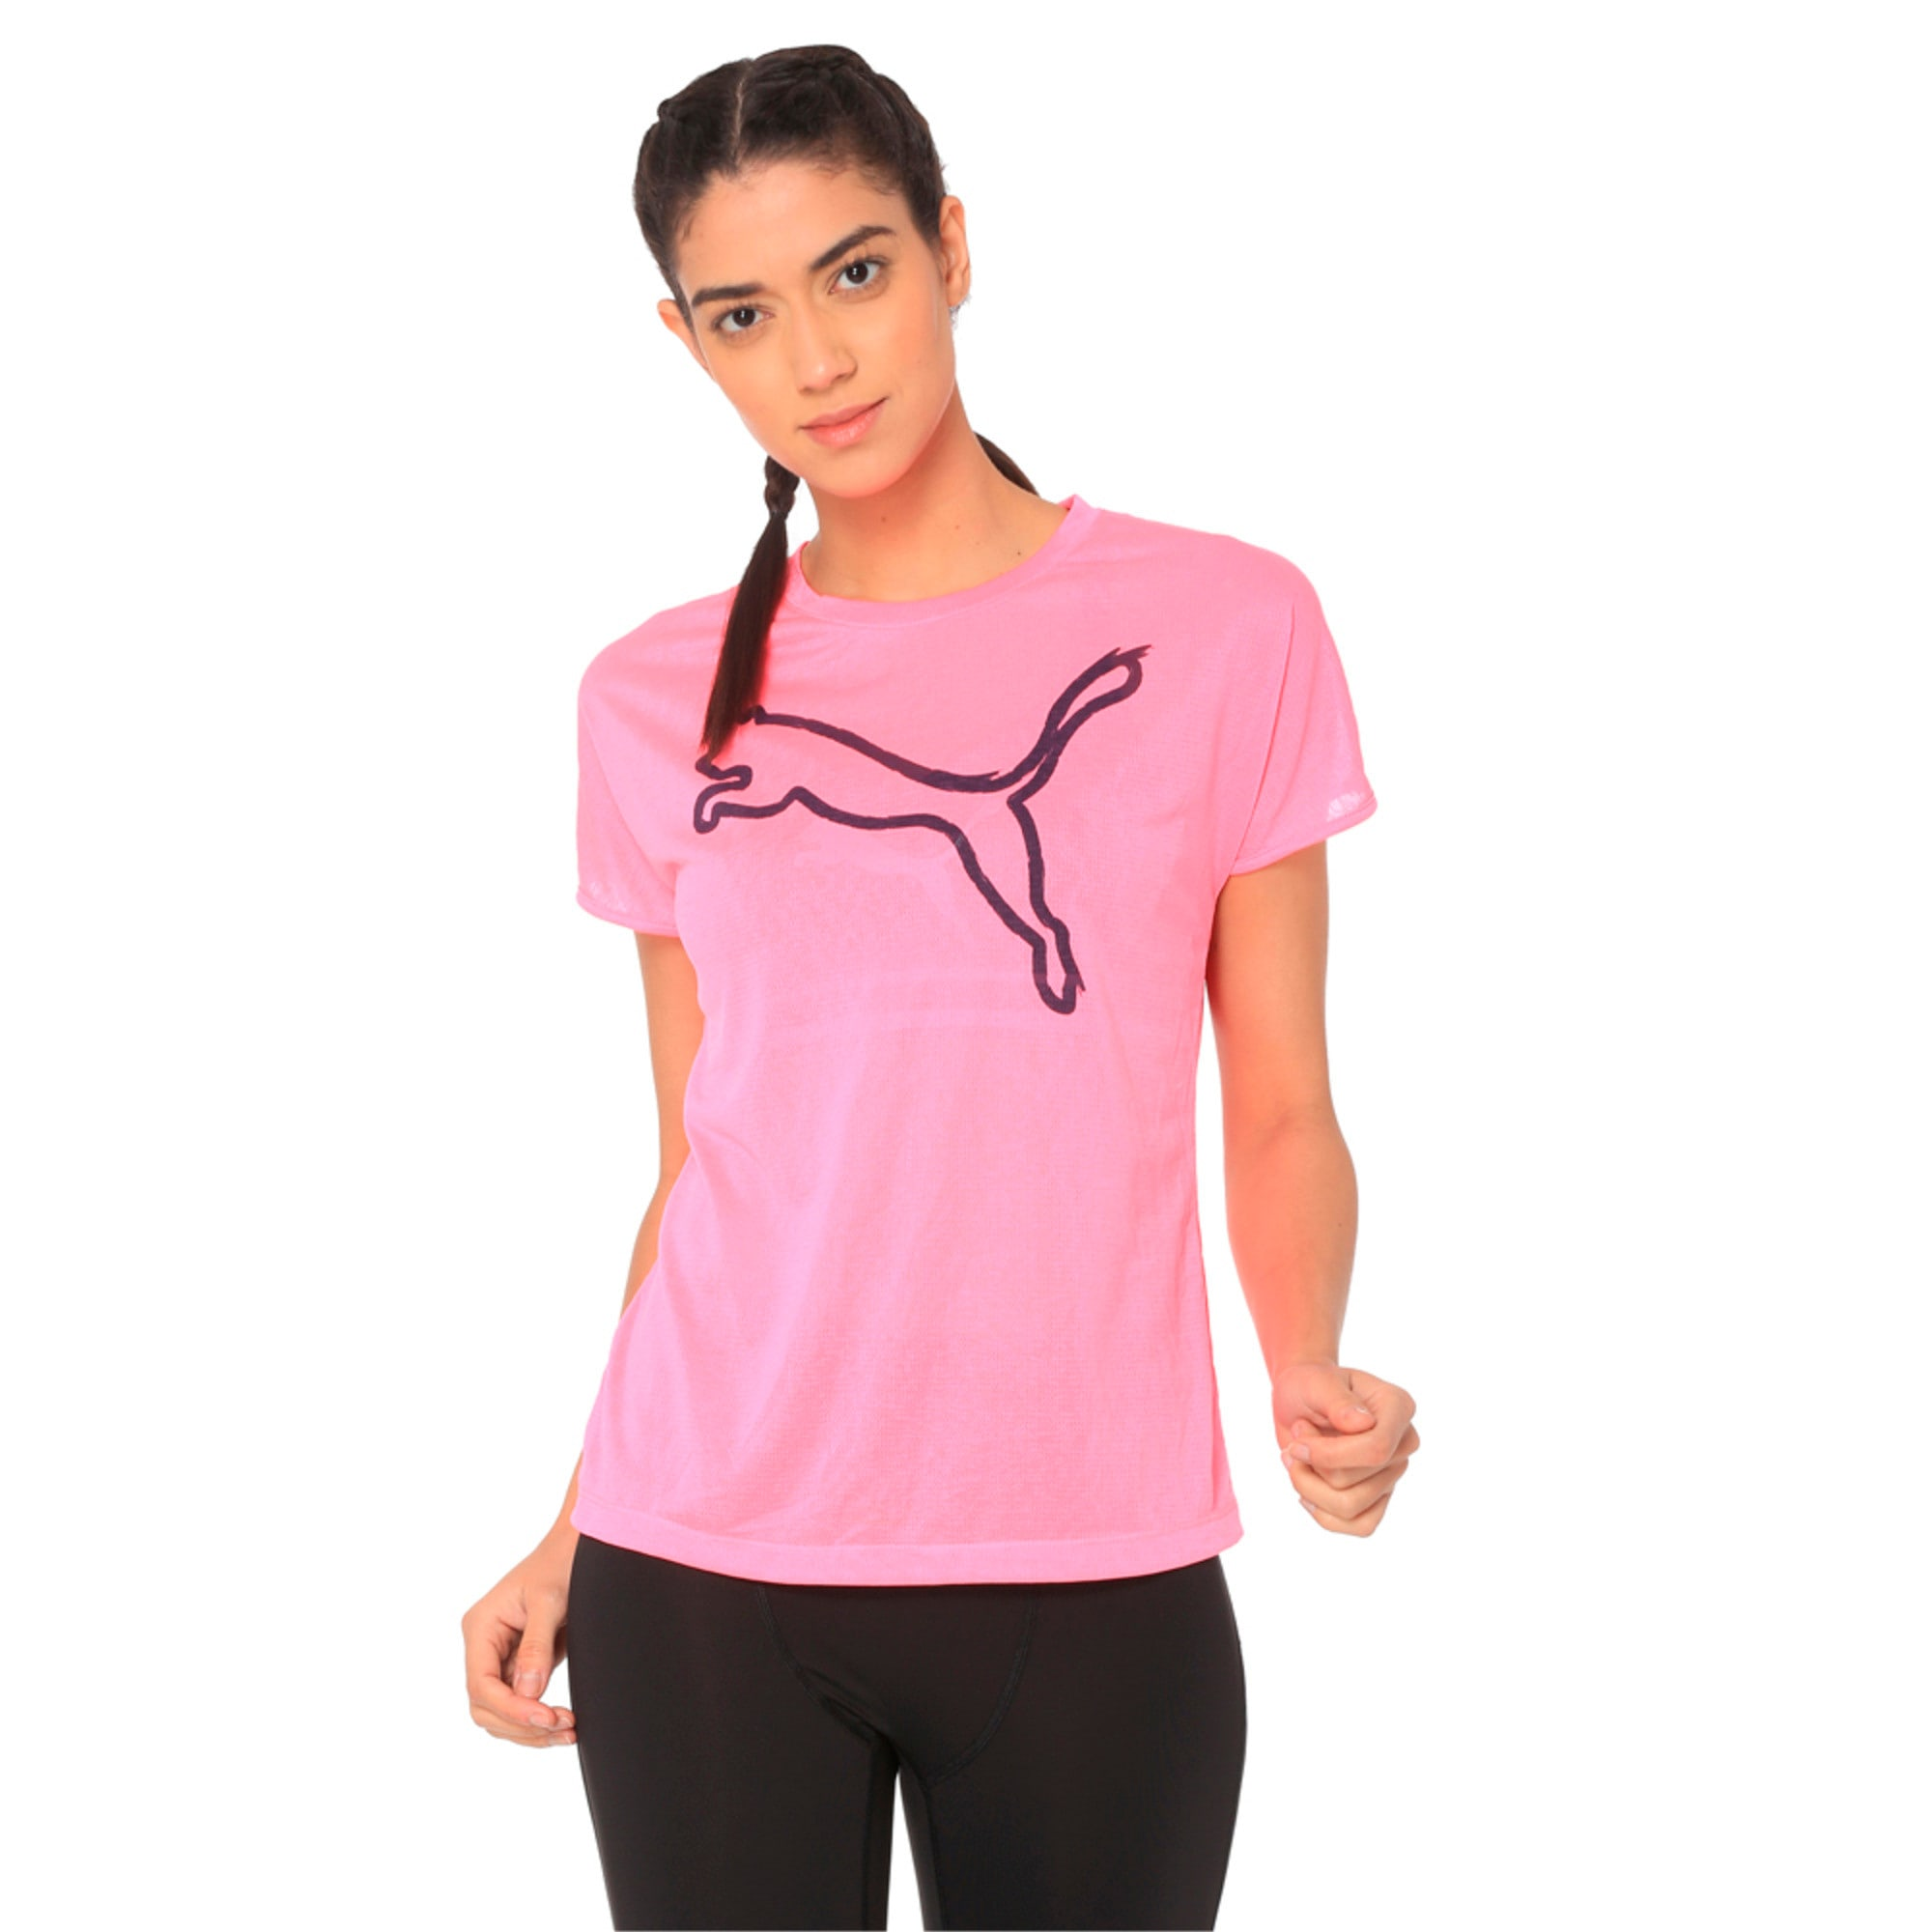 Thumbnail 1 of A.C.E. Crew Neck Women's T-Shirt, KNOCKOUT PINK, medium-IND